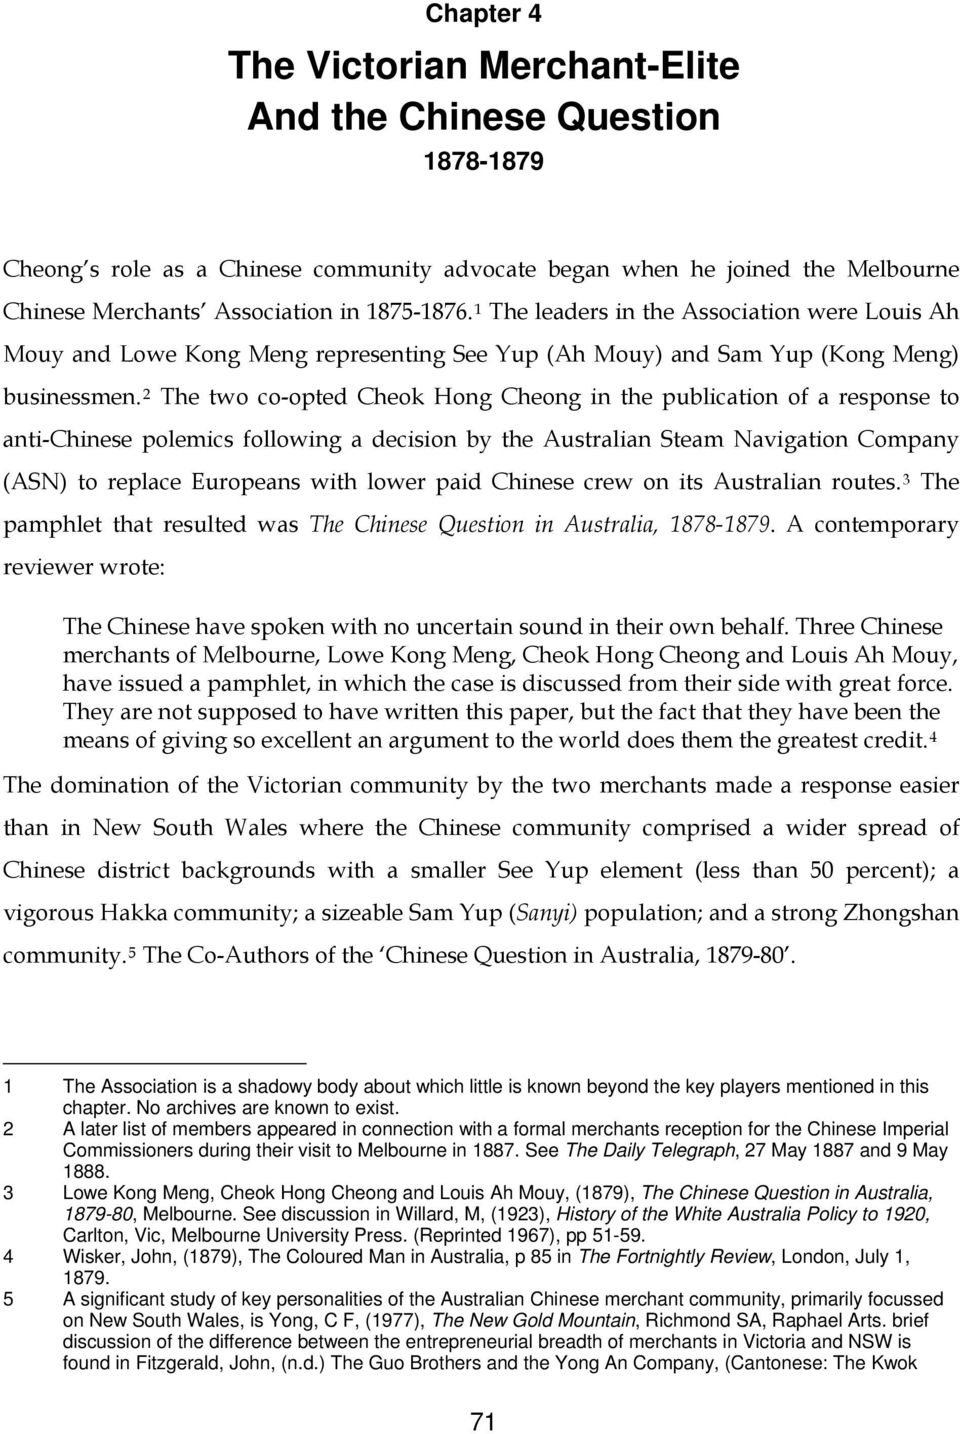 2 The two co-opted Cheok Hong Cheong in the publication of a response to anti-chinese polemics following a decision by the Australian Steam Navigation Company (ASN) to replace Europeans with lower